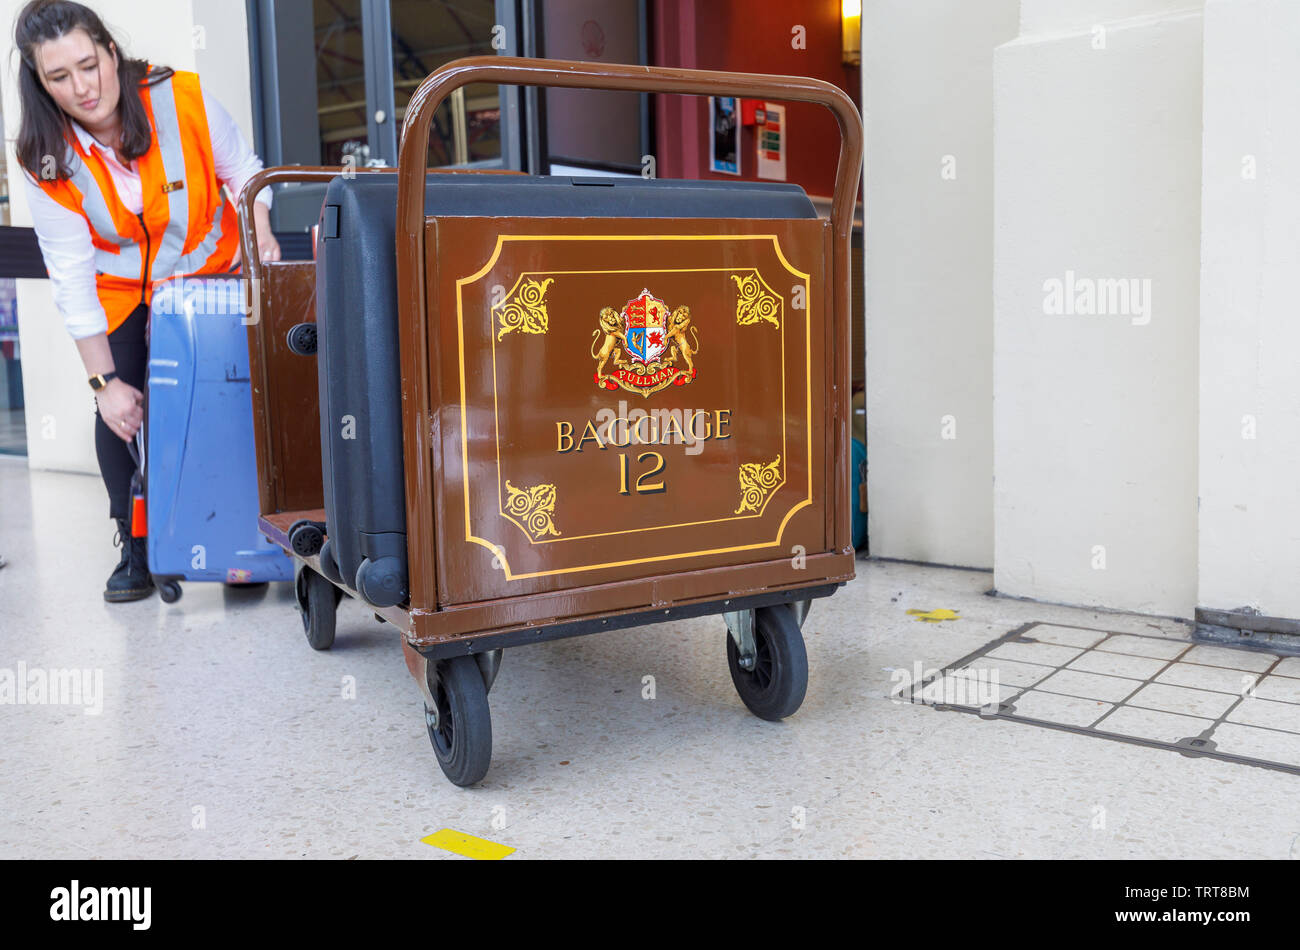 Pullman baggage luggage trolley with suitcases at the entrance to the Belmond Venice Simplon Orient Express departure lounge, London Victoria station Stock Photo